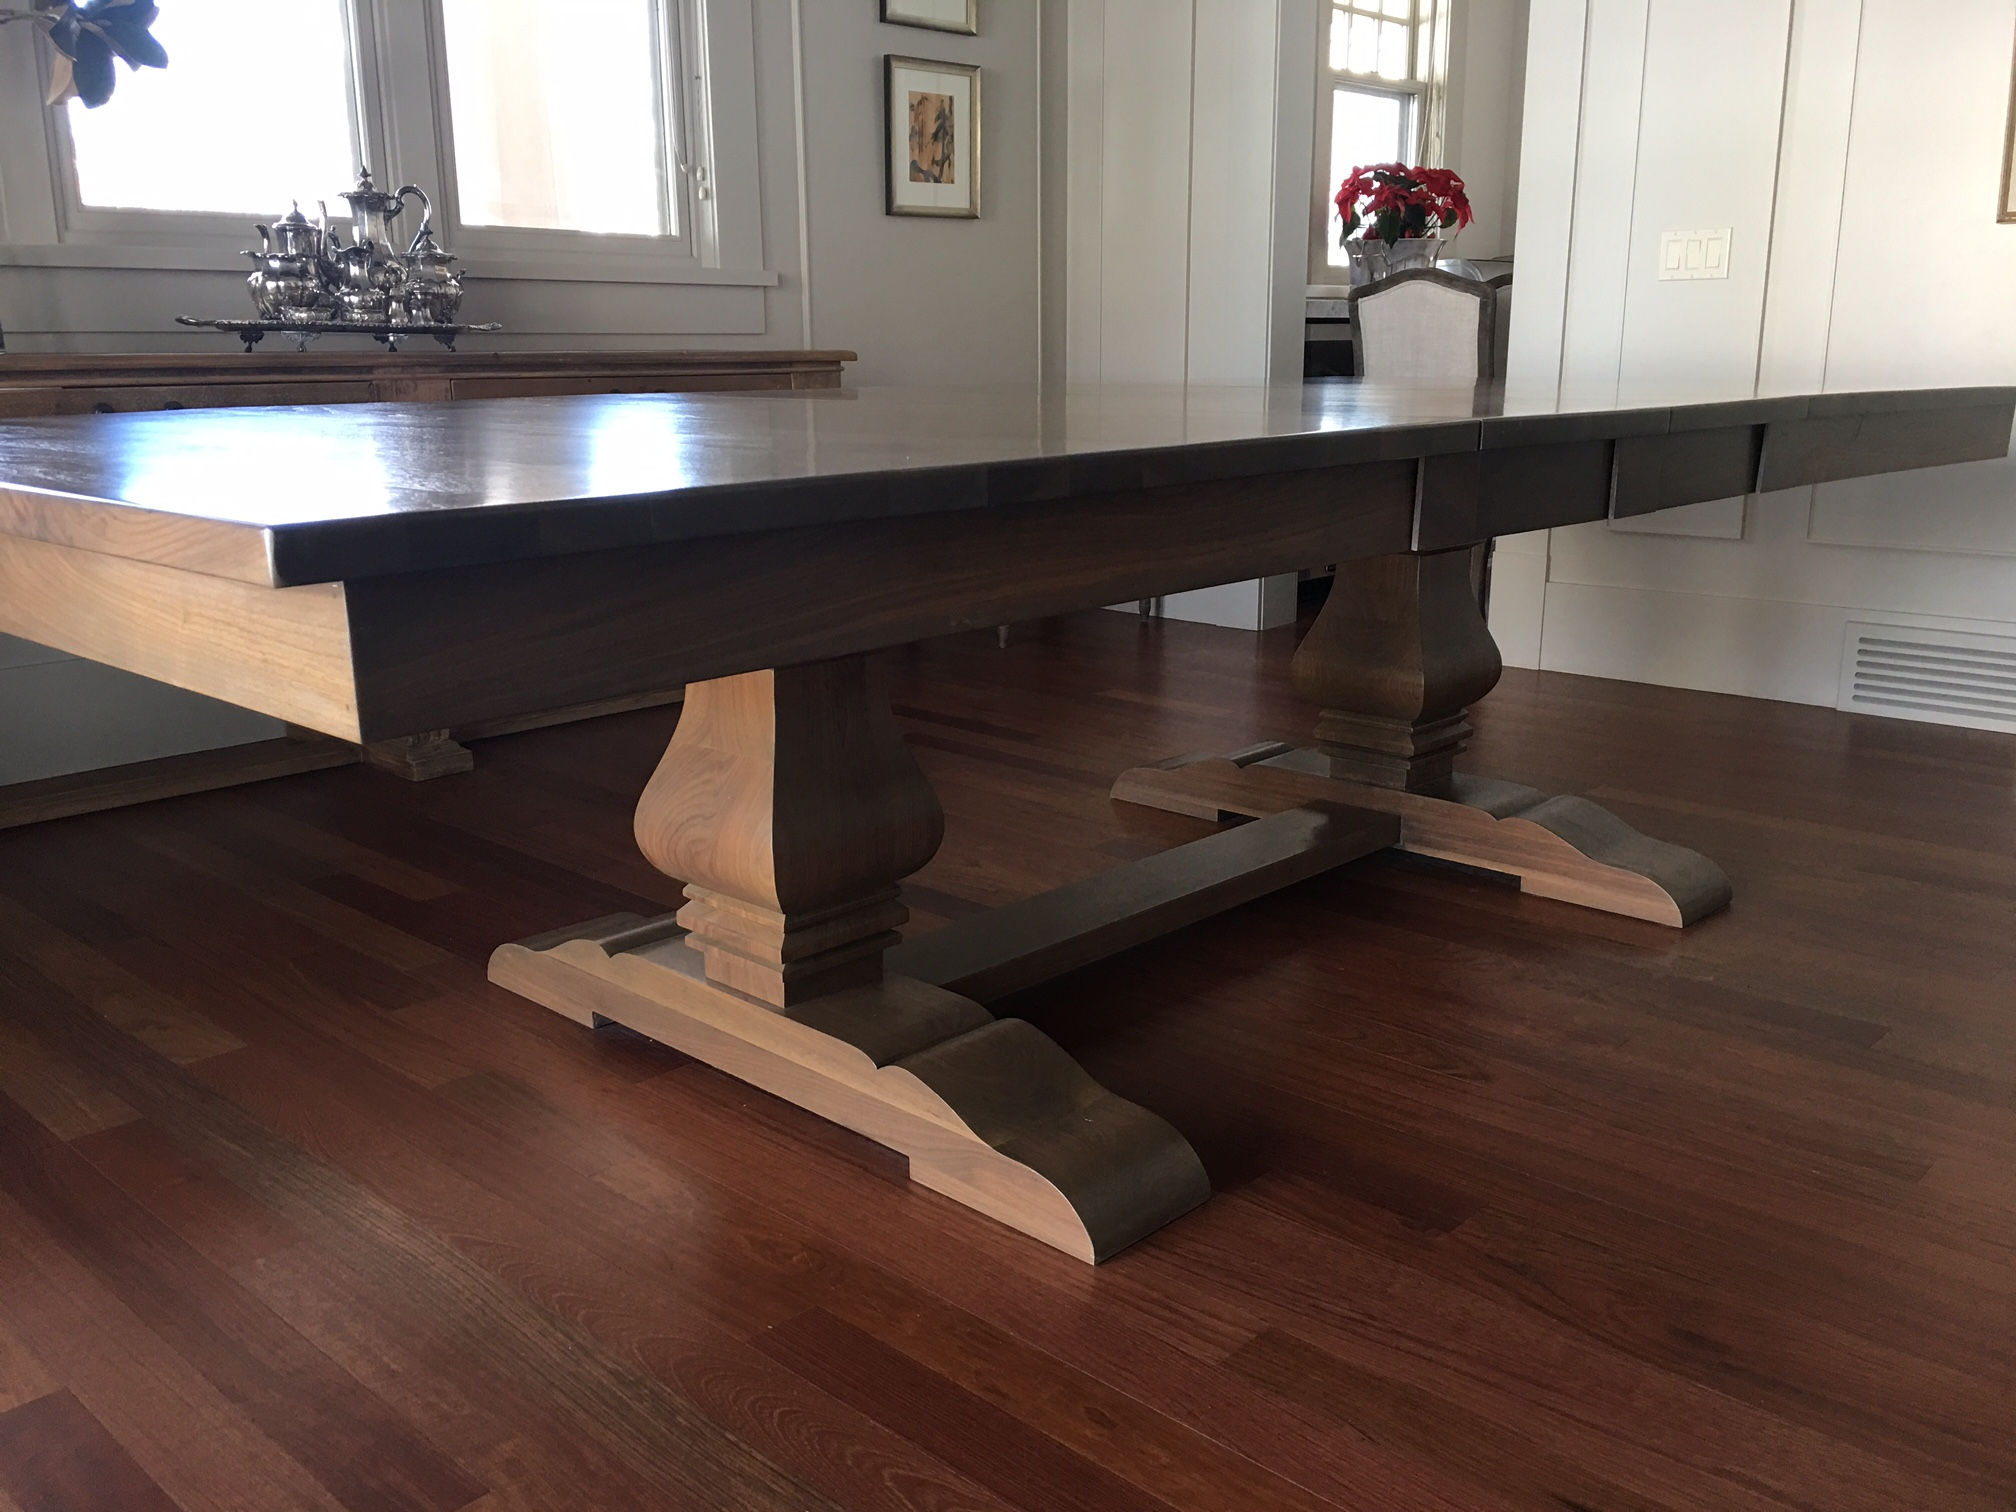 Wadsworth Dining Table